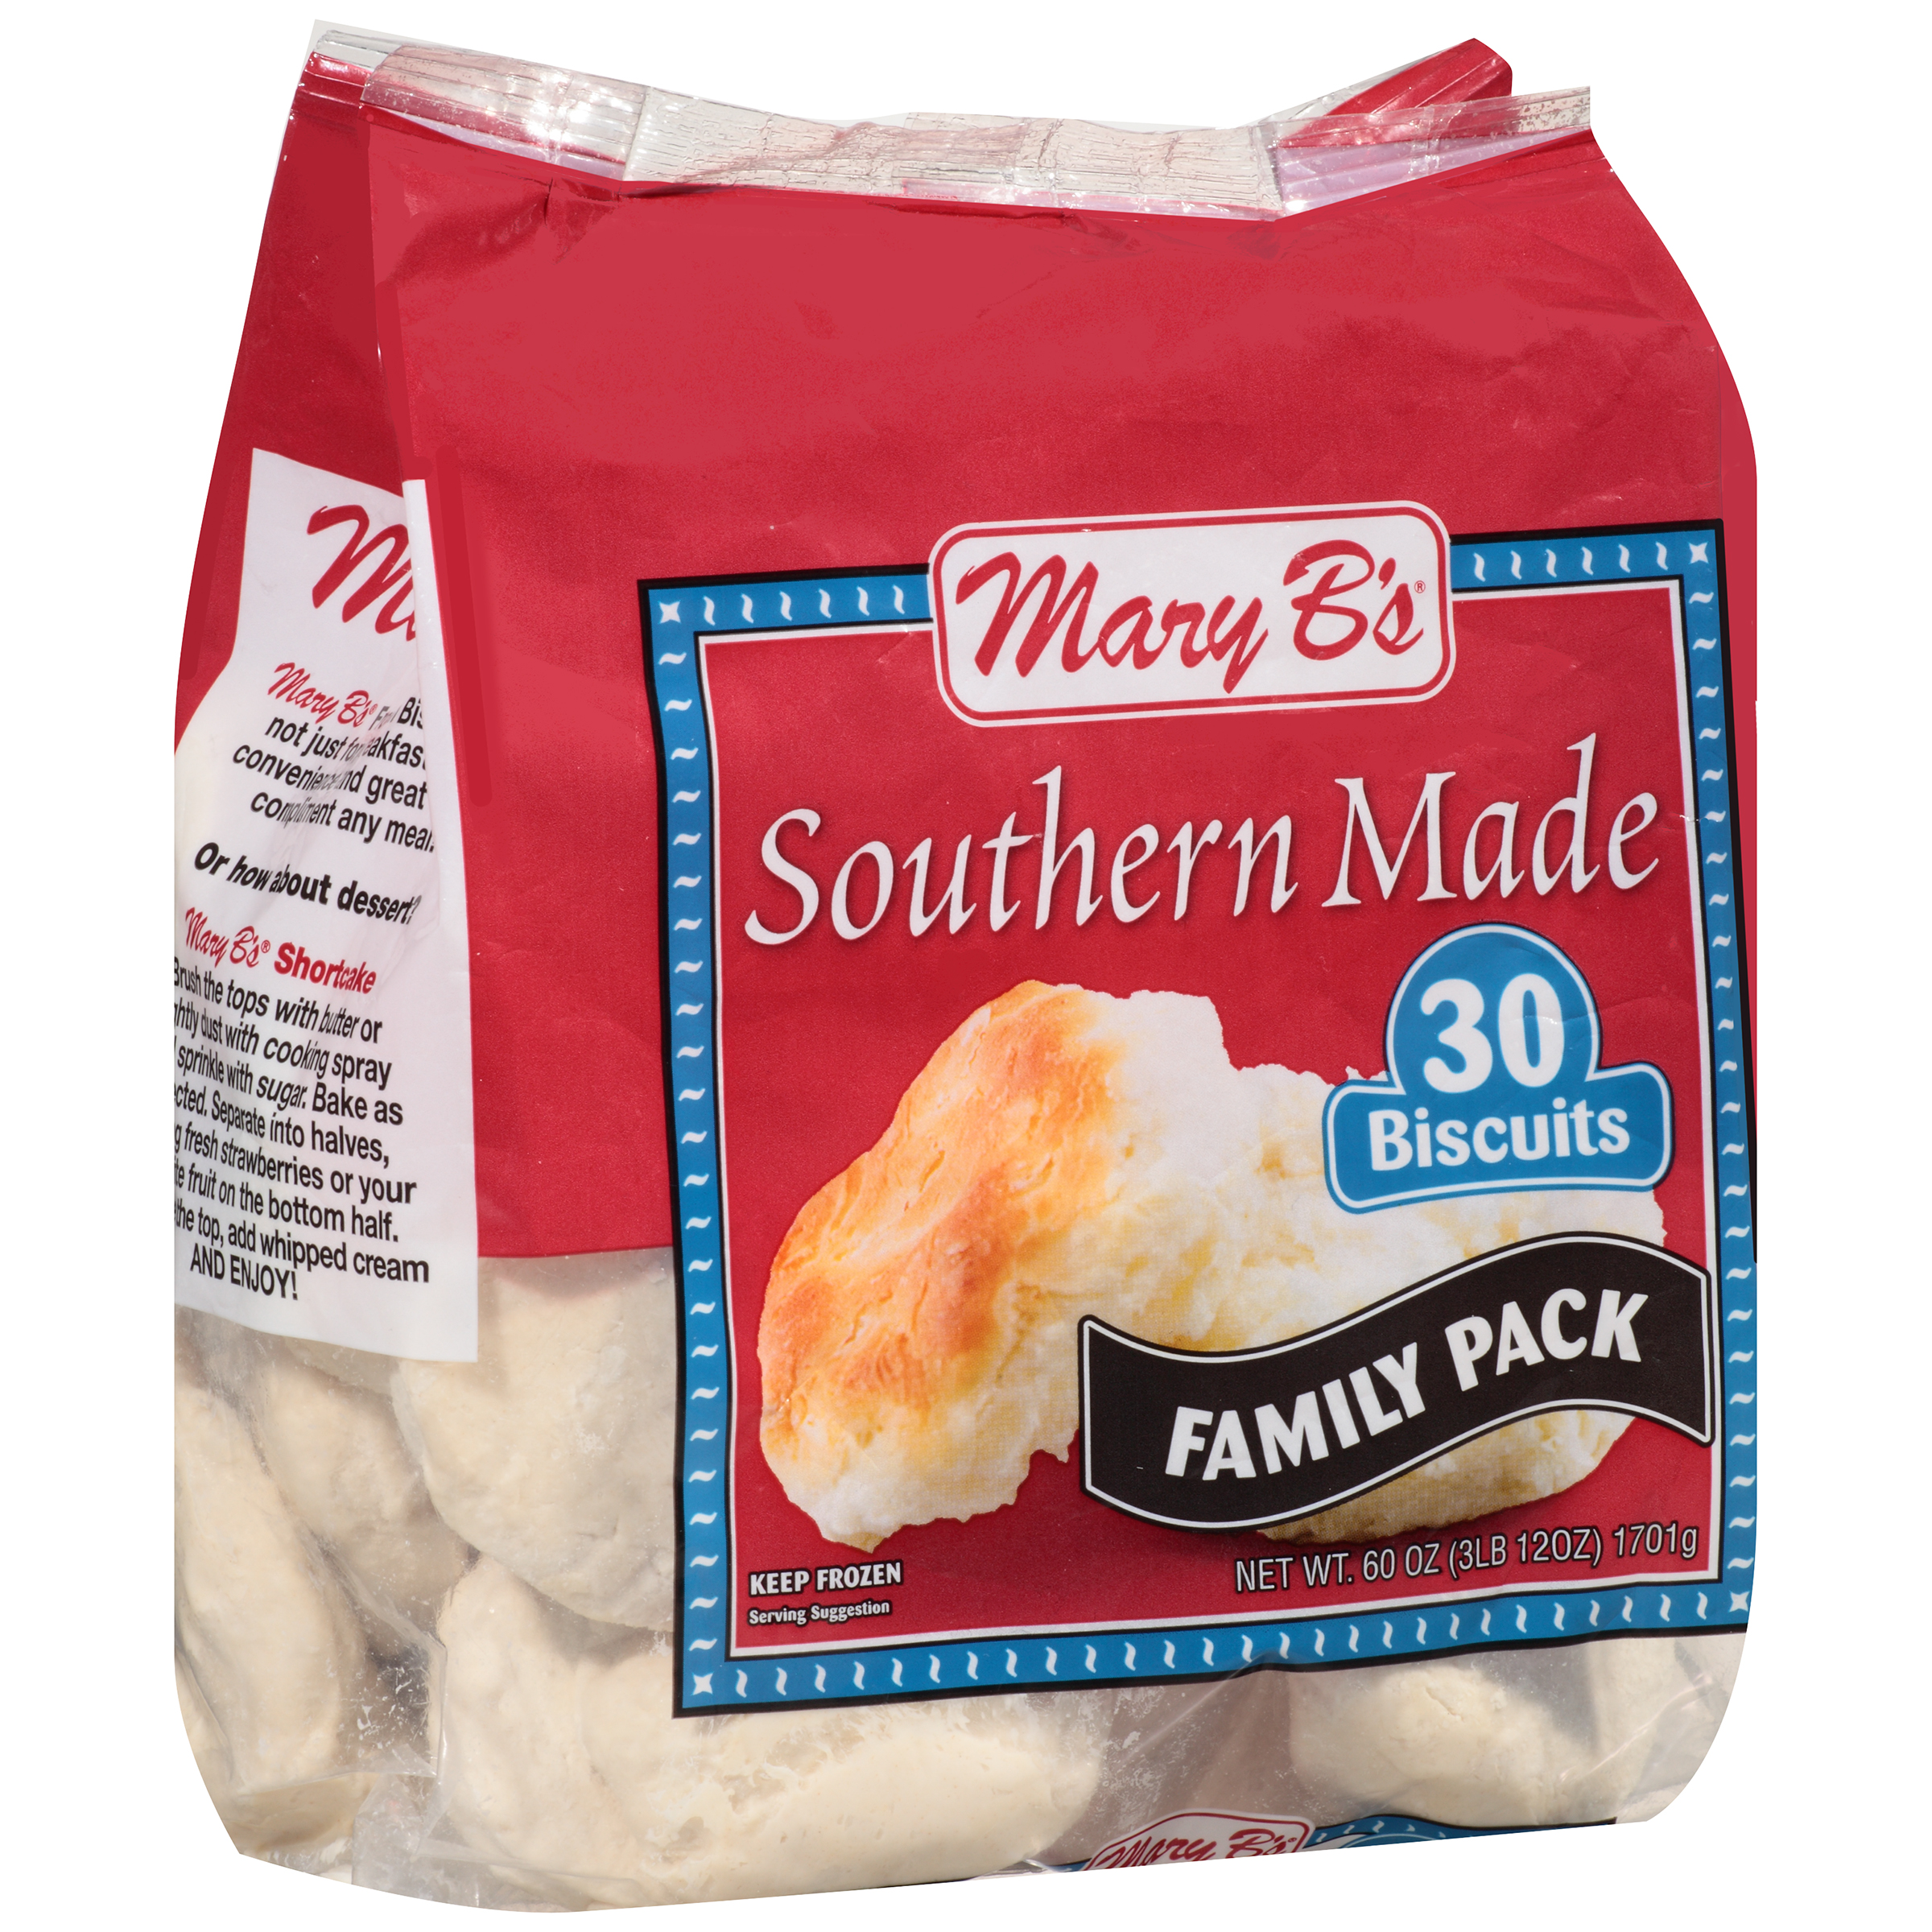 Mary B's® Southern Made Biscuits 30 ct Bag